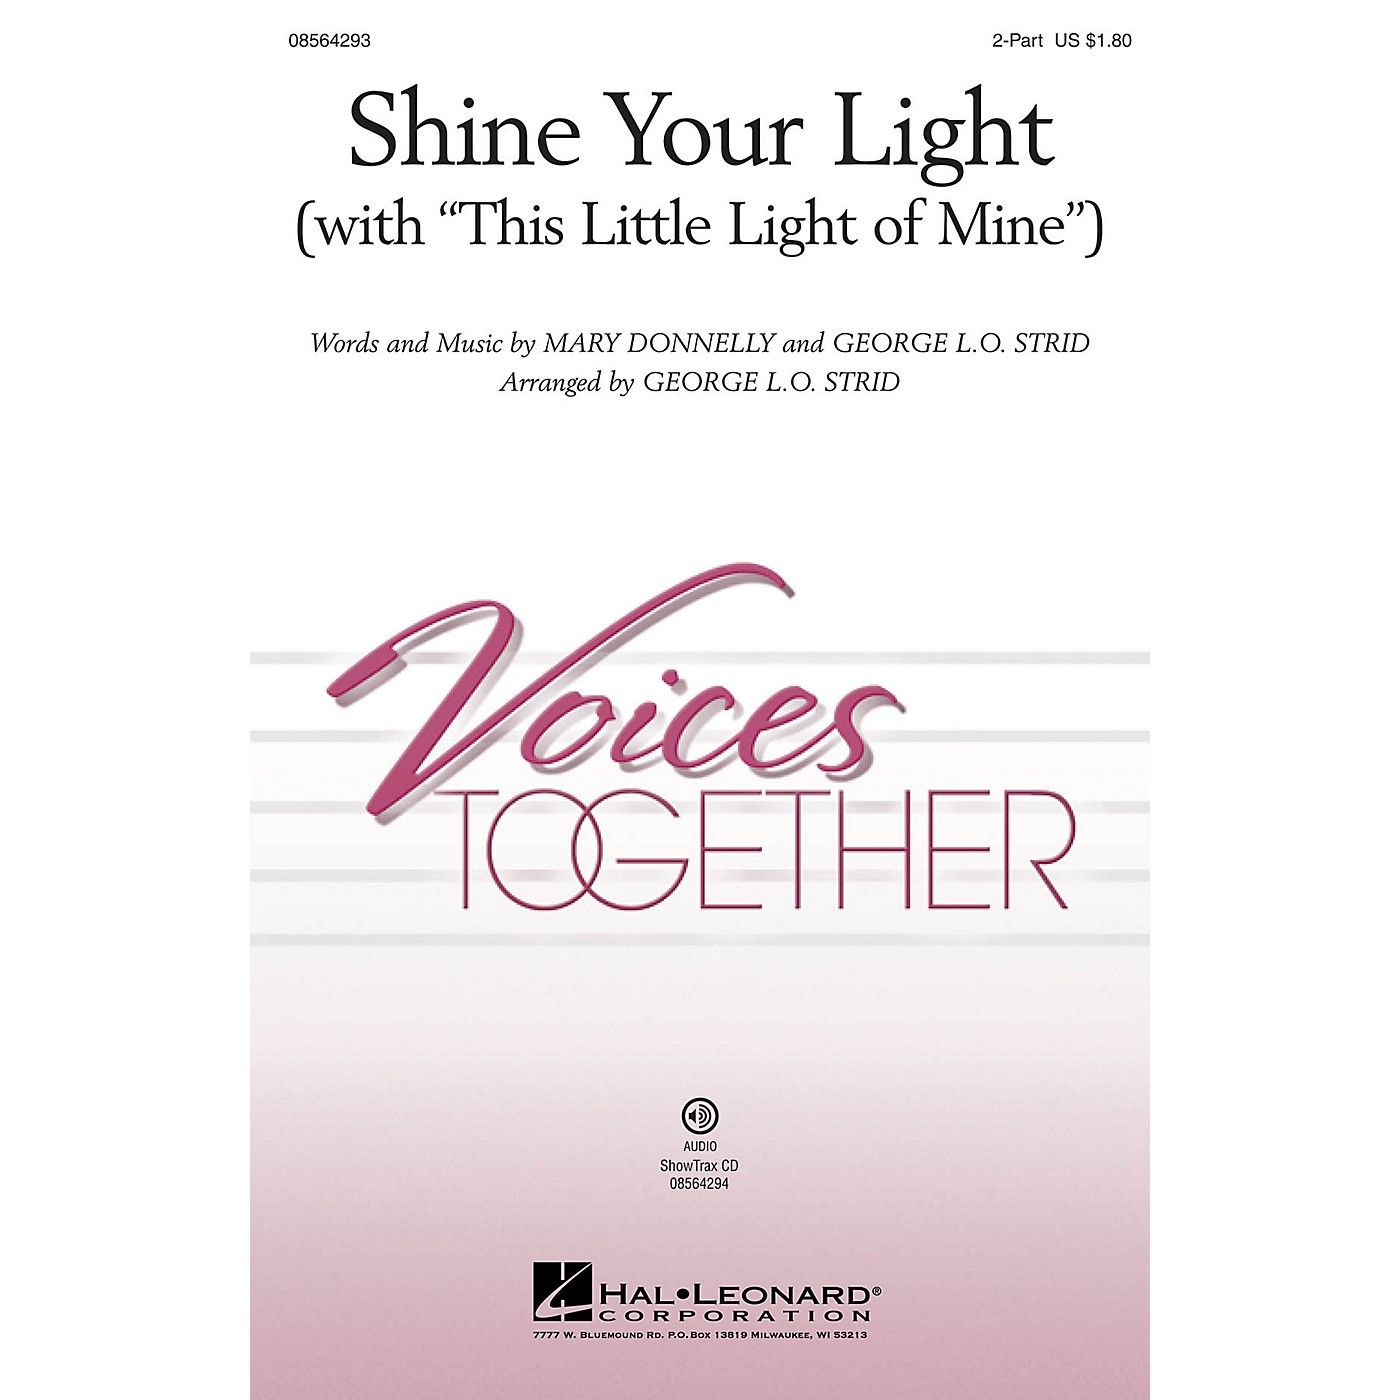 Hal Leonard Shine Your Light (with This Little Light of Mine) 2-Part arranged by George. L.O. Strid thumbnail